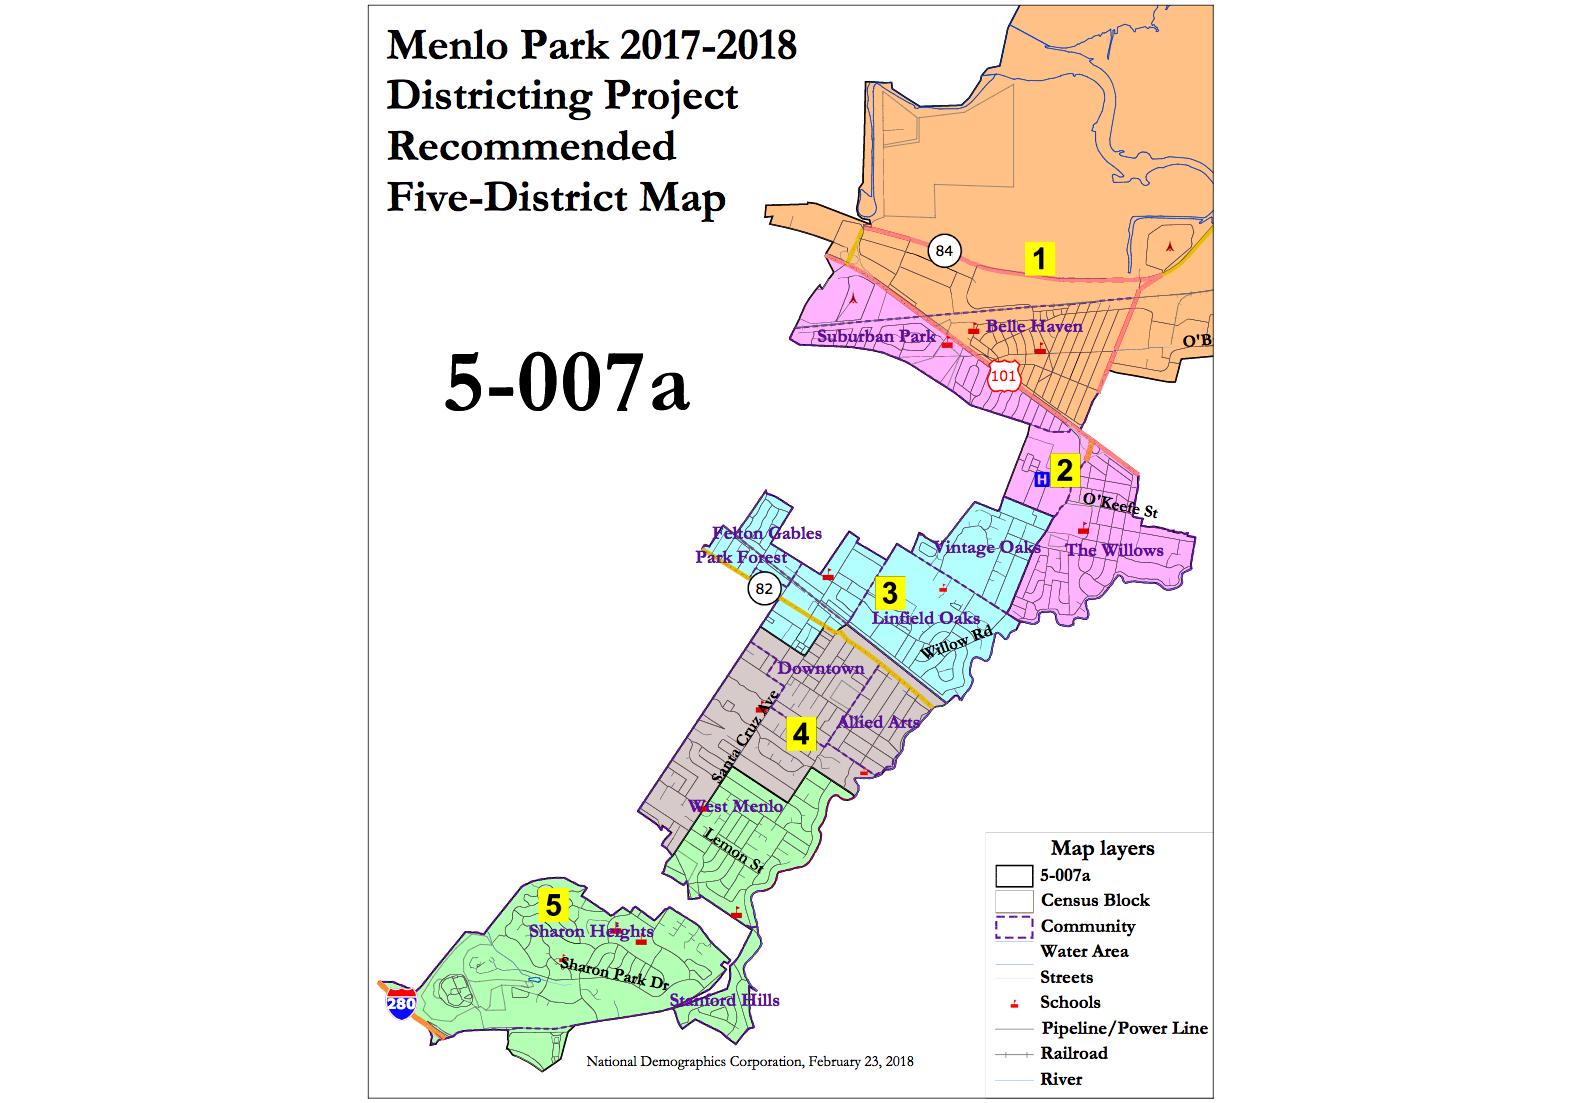 Santa Clara loses lawsuit over at-large council elections ... on palm springs district map, charleston district map, south san francisco district map, calaveras county district map, stockton district map, tuolumne county district map, saint paul district map, mesa district map, springfield district map, fresno district map, garden grove district map, sc state district map, rio rancho district map, inglewood district map, placer county district map, jacksonville district map, daly city district map, fort lauderdale district map, anaheim district map, new braunfels district map,